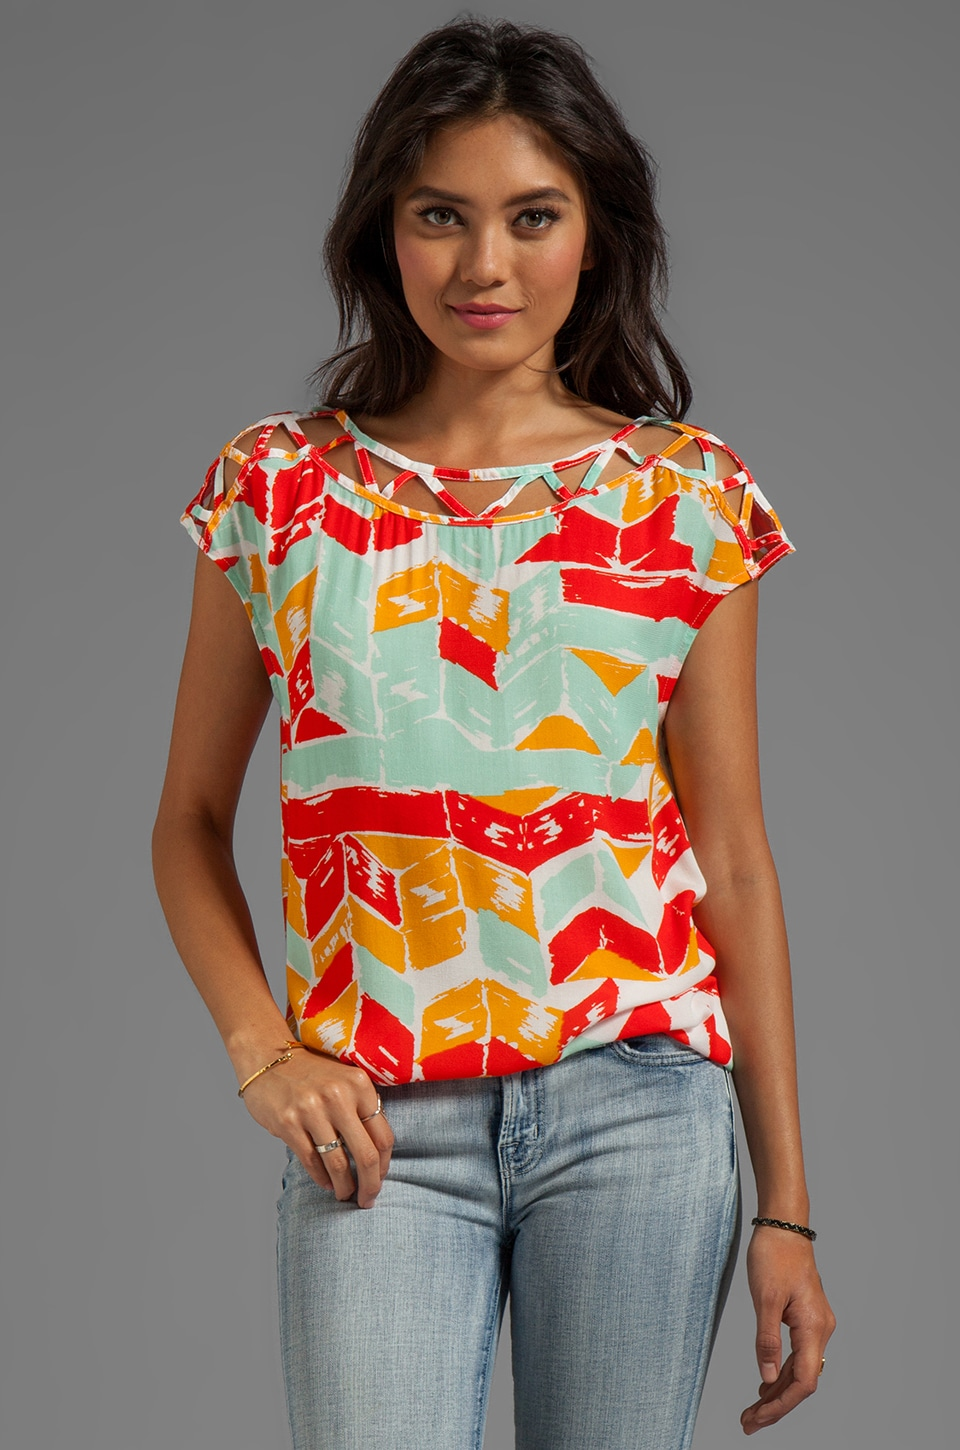 Ella Moss Totem Post Short Sleeve Top in Tomato